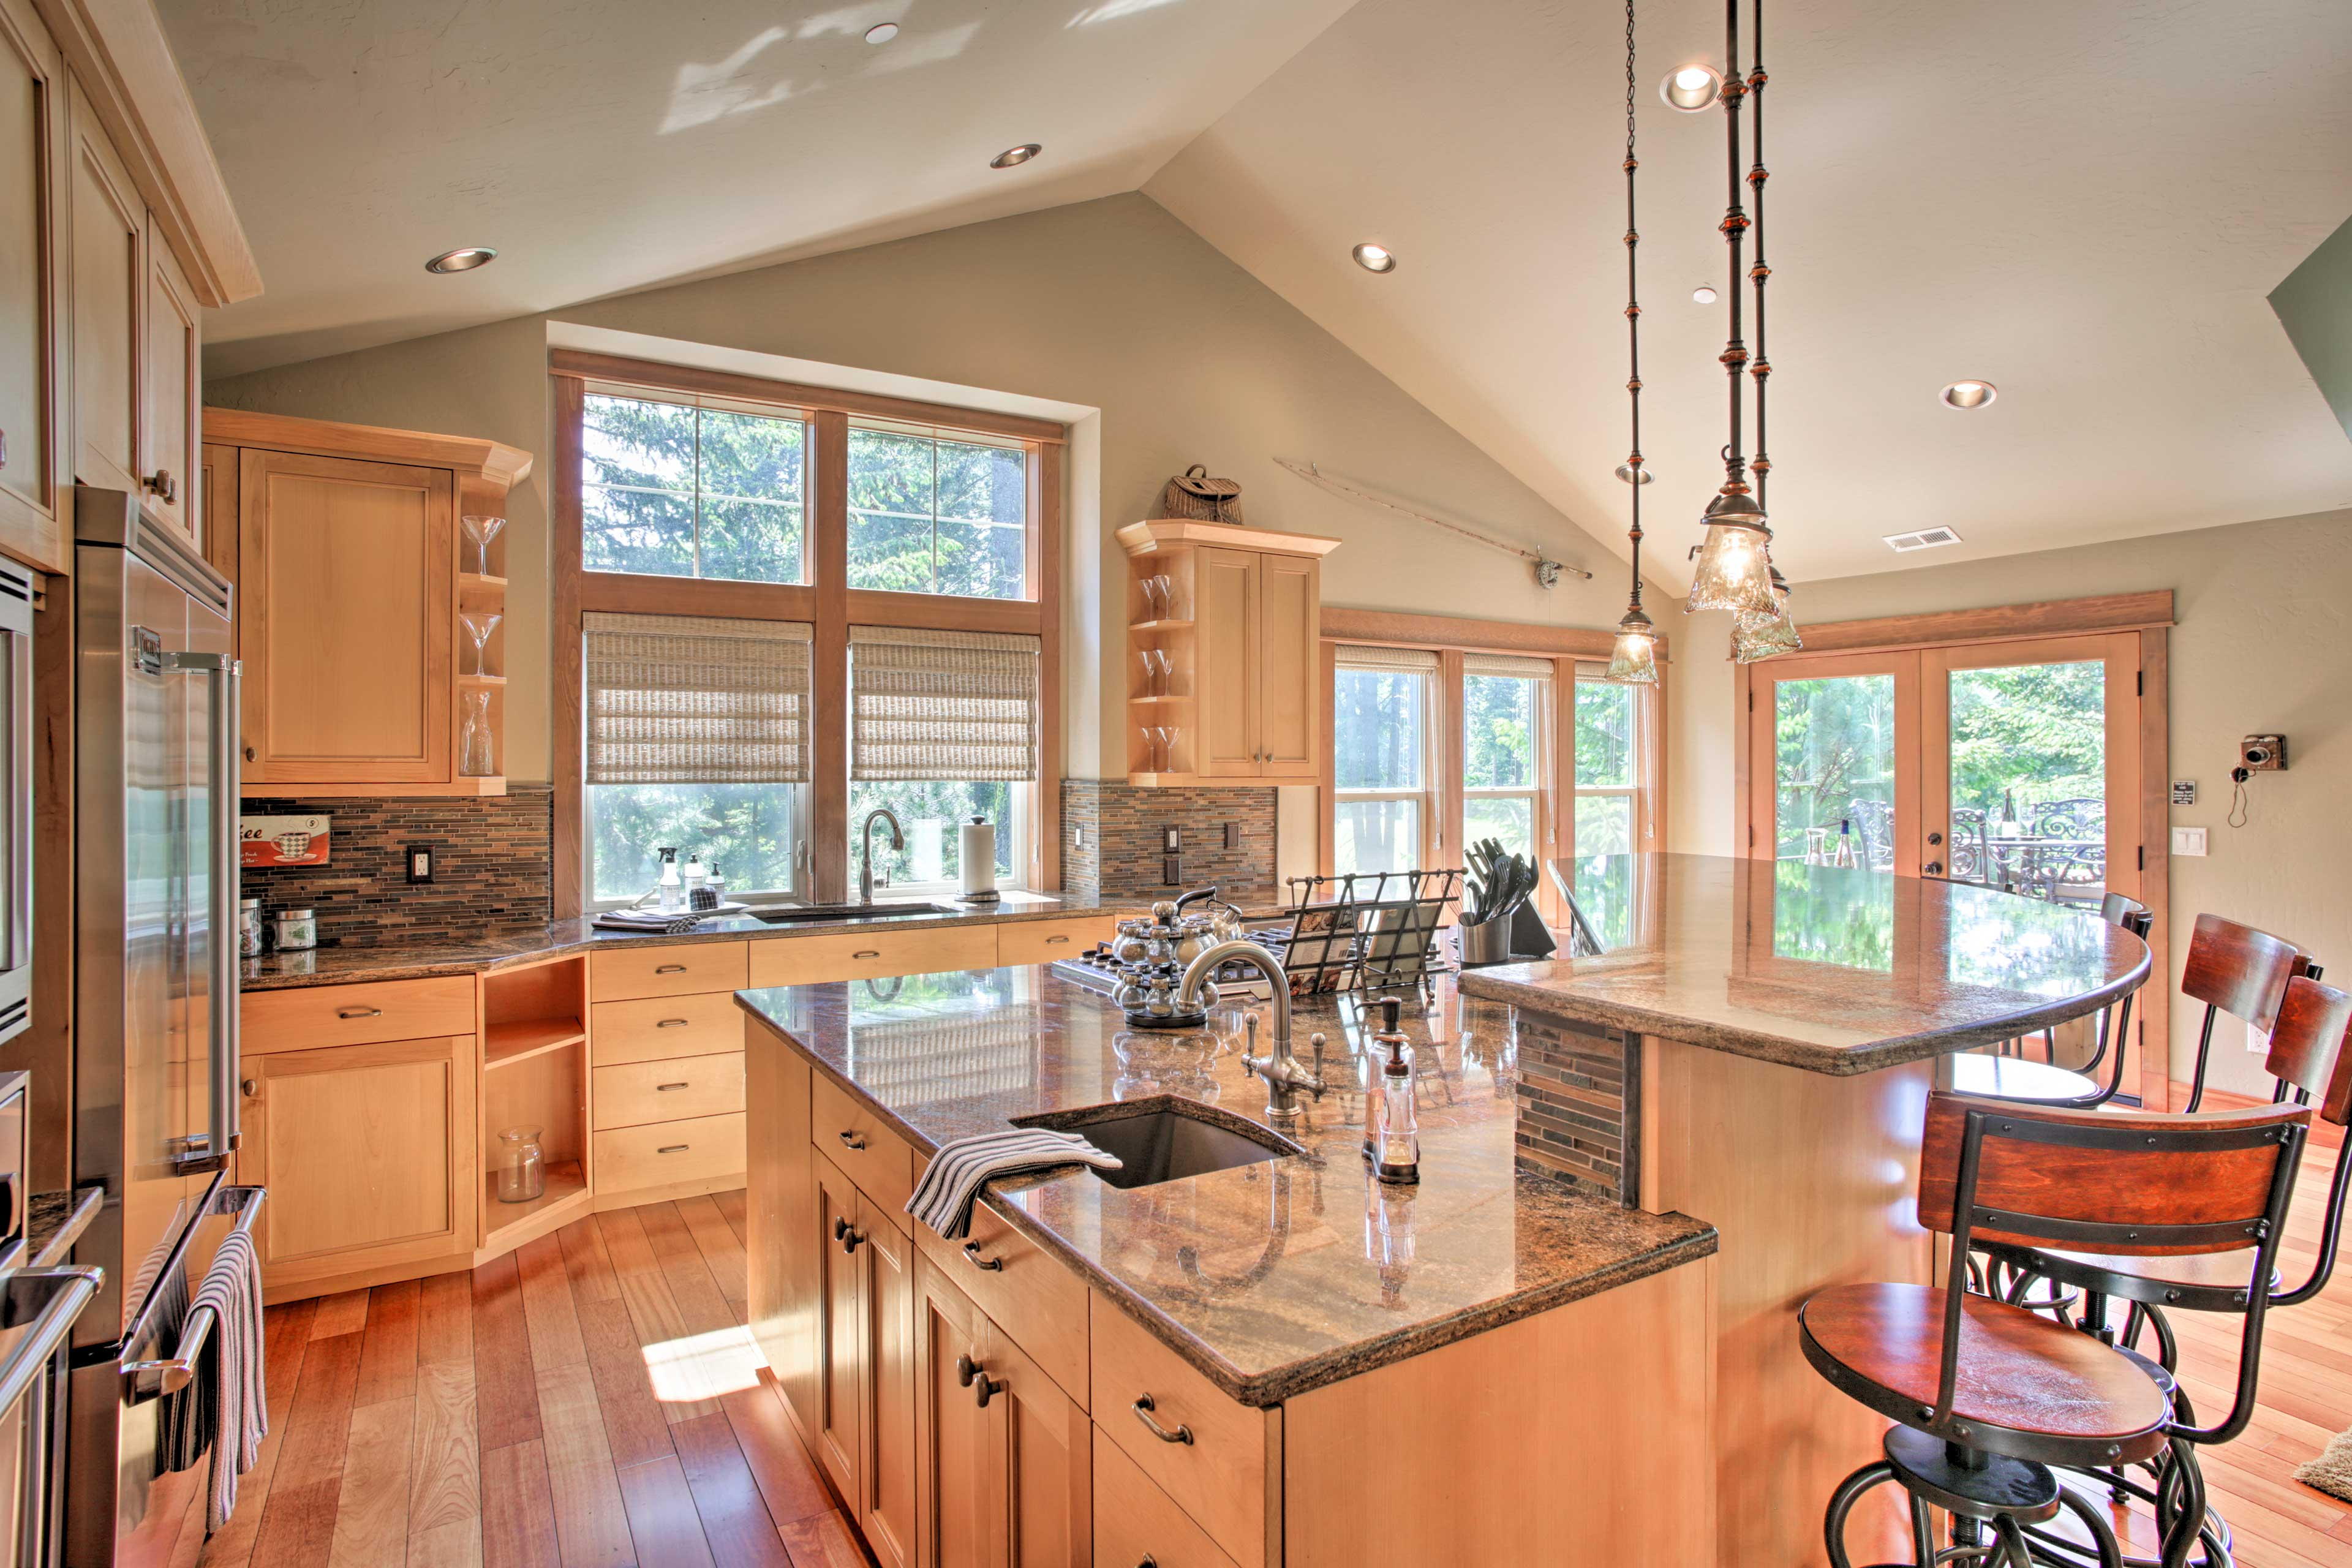 This updated kitchen will bring the gourmet chef out of any ordinary cook!